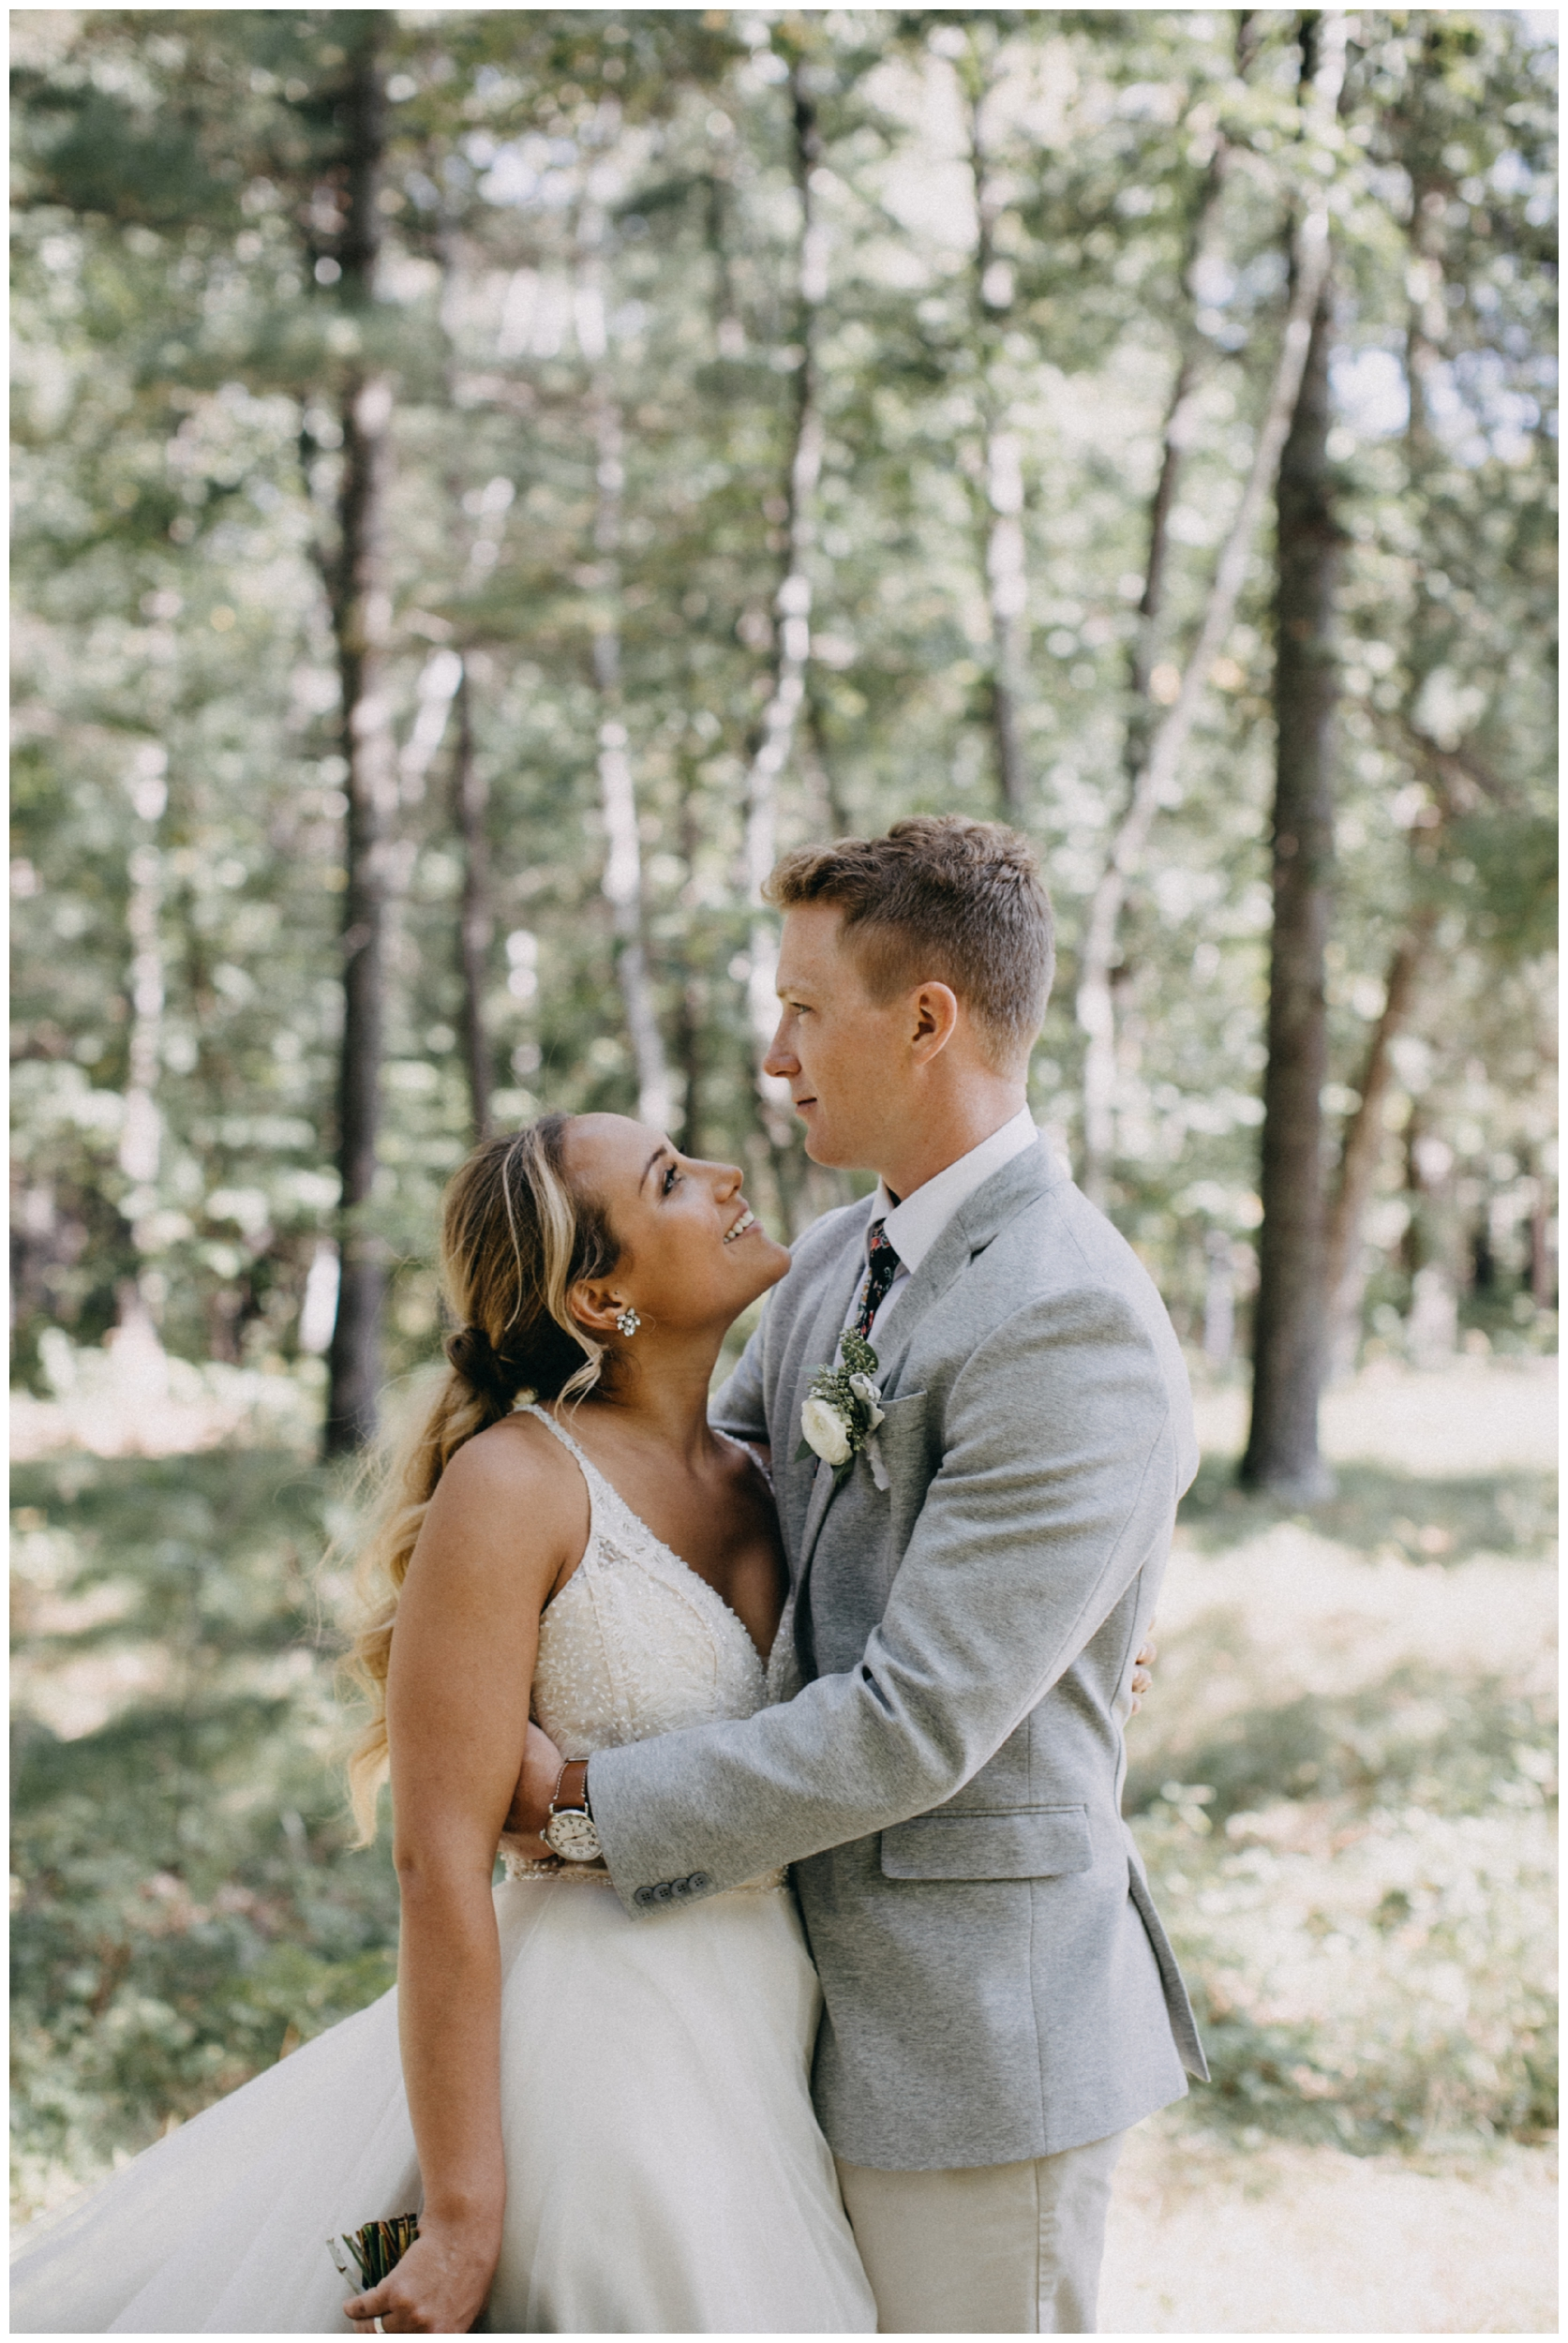 Romantic summer wedding at Camp Foley in Pine River MN photographed by Britt DeZeeuw